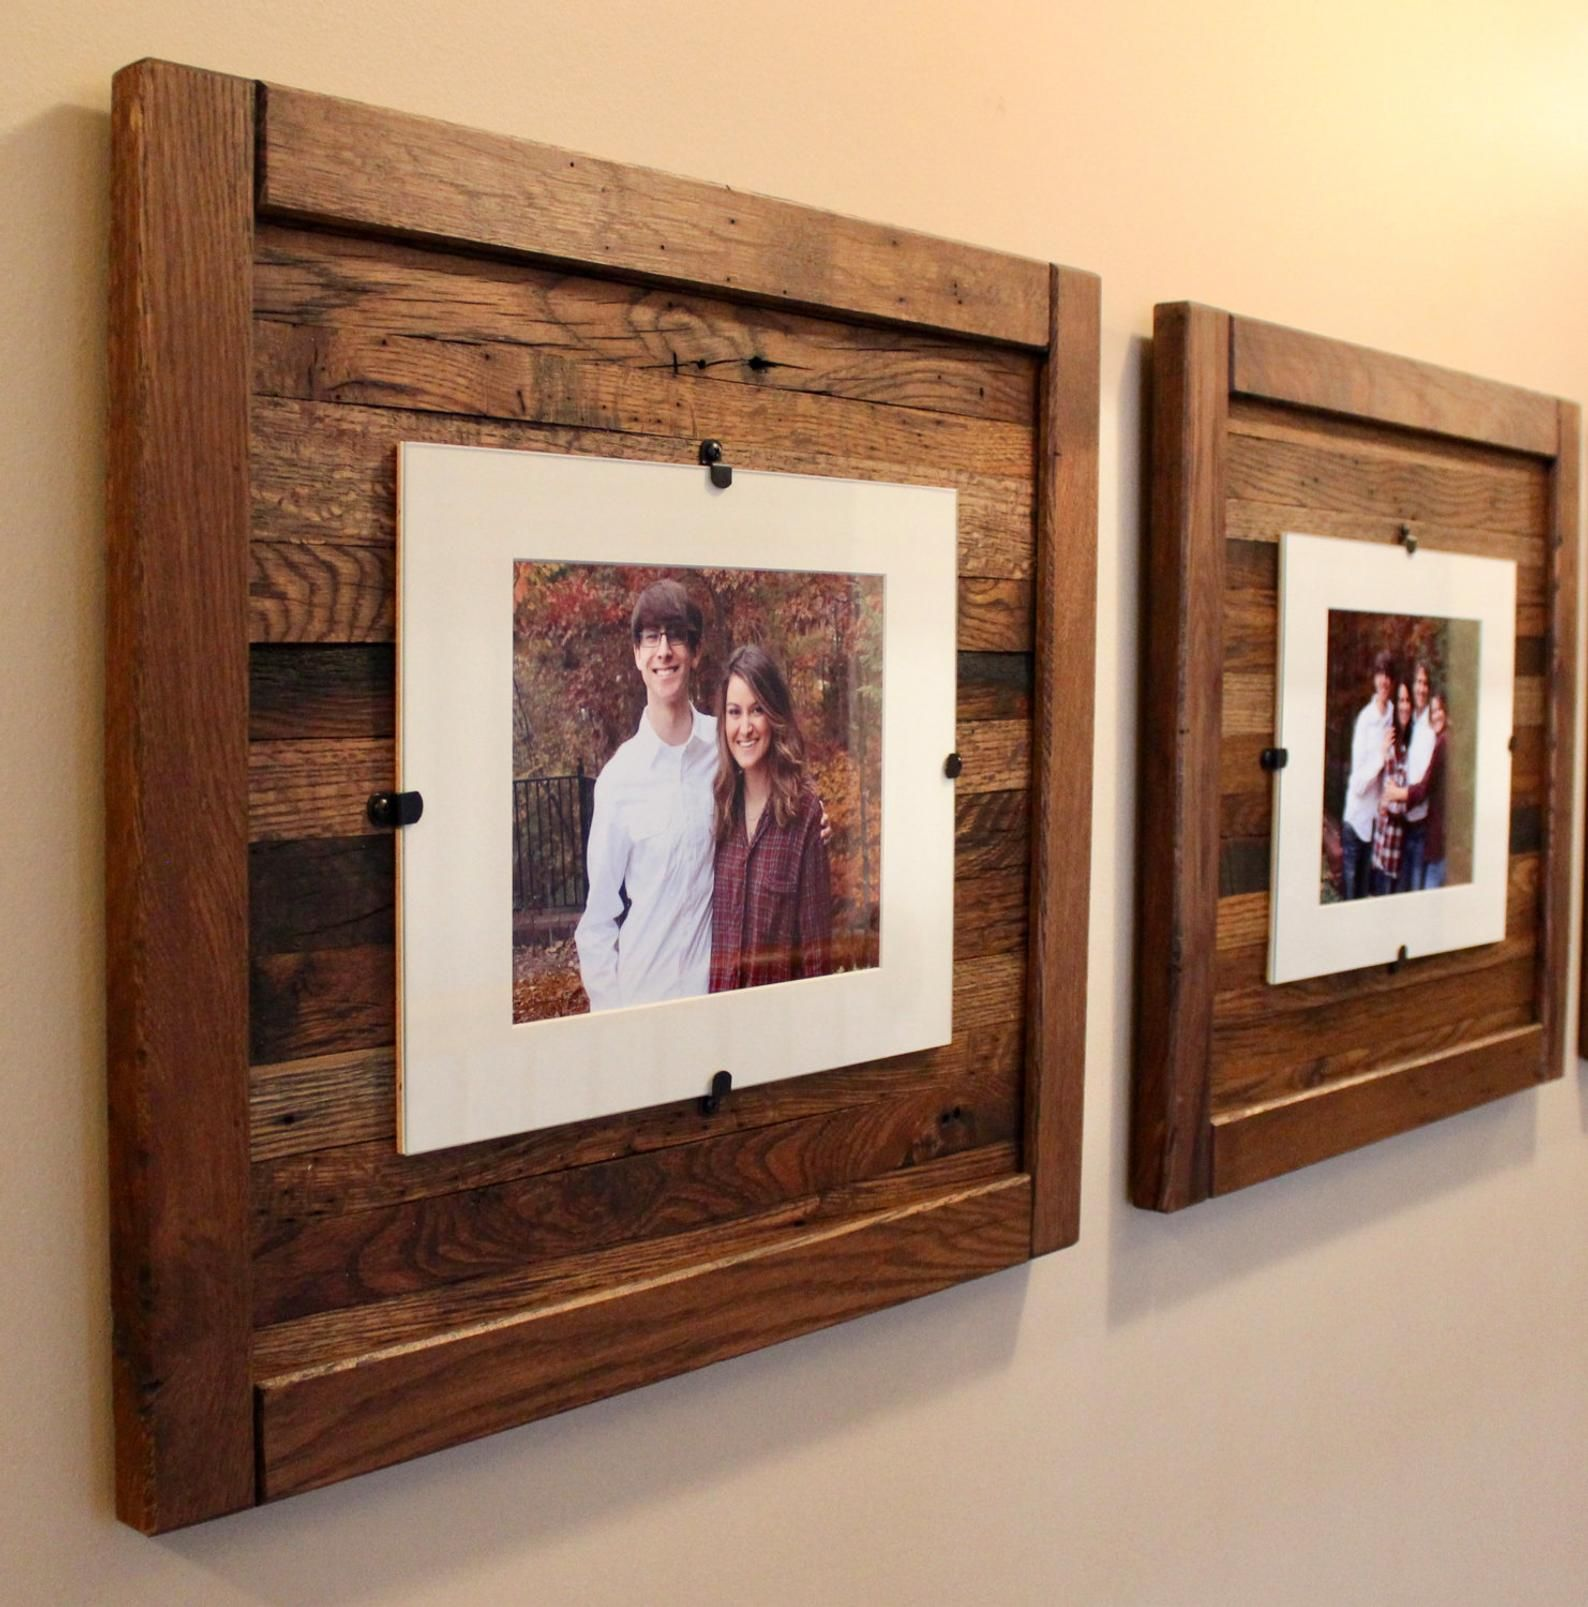 Rustic Wood Picture Frame 8 X 10 With Mat 11 X 14 Picture Etsy In 2020 Reclaimed Wood Picture Frames Reclaimed Wood Frames Rustic Wood Frame